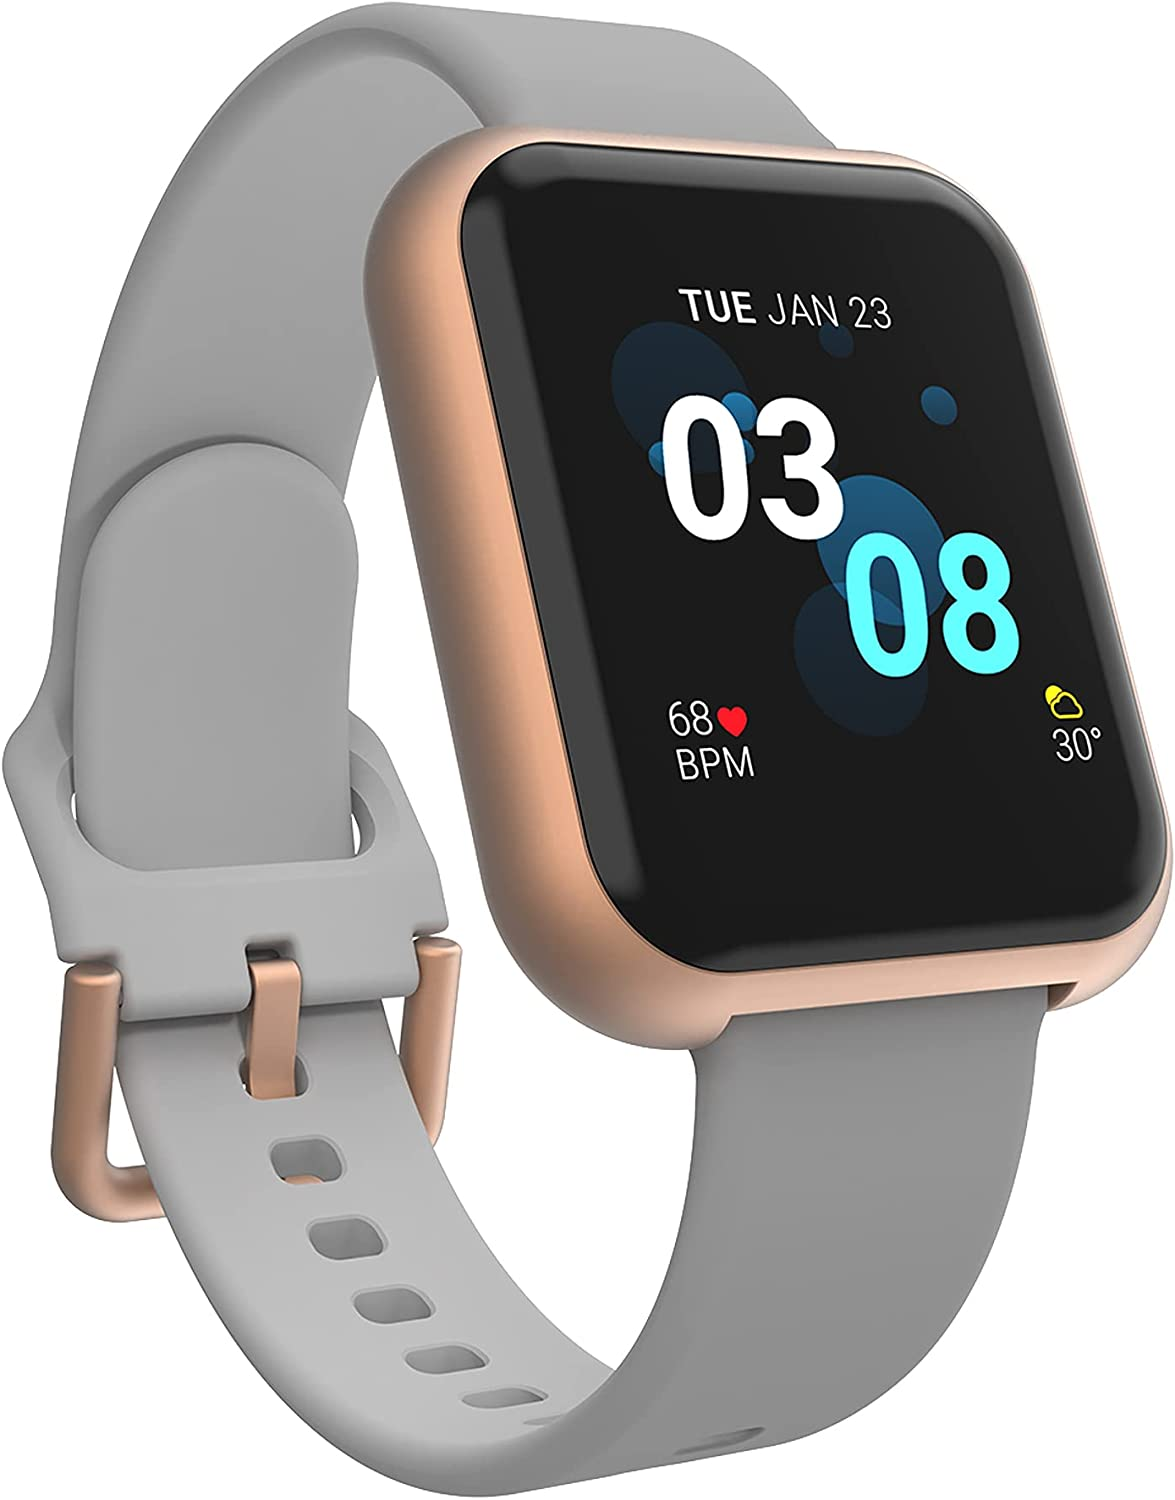 iTouch Air 3 Smartwatch Fitness Tracker, Heart Rate, Step Counter, Sleep Monitor, Message, IP68 Swimming Waterproof for Women and Men, Touch Screen, Compatible with iPhone and Android